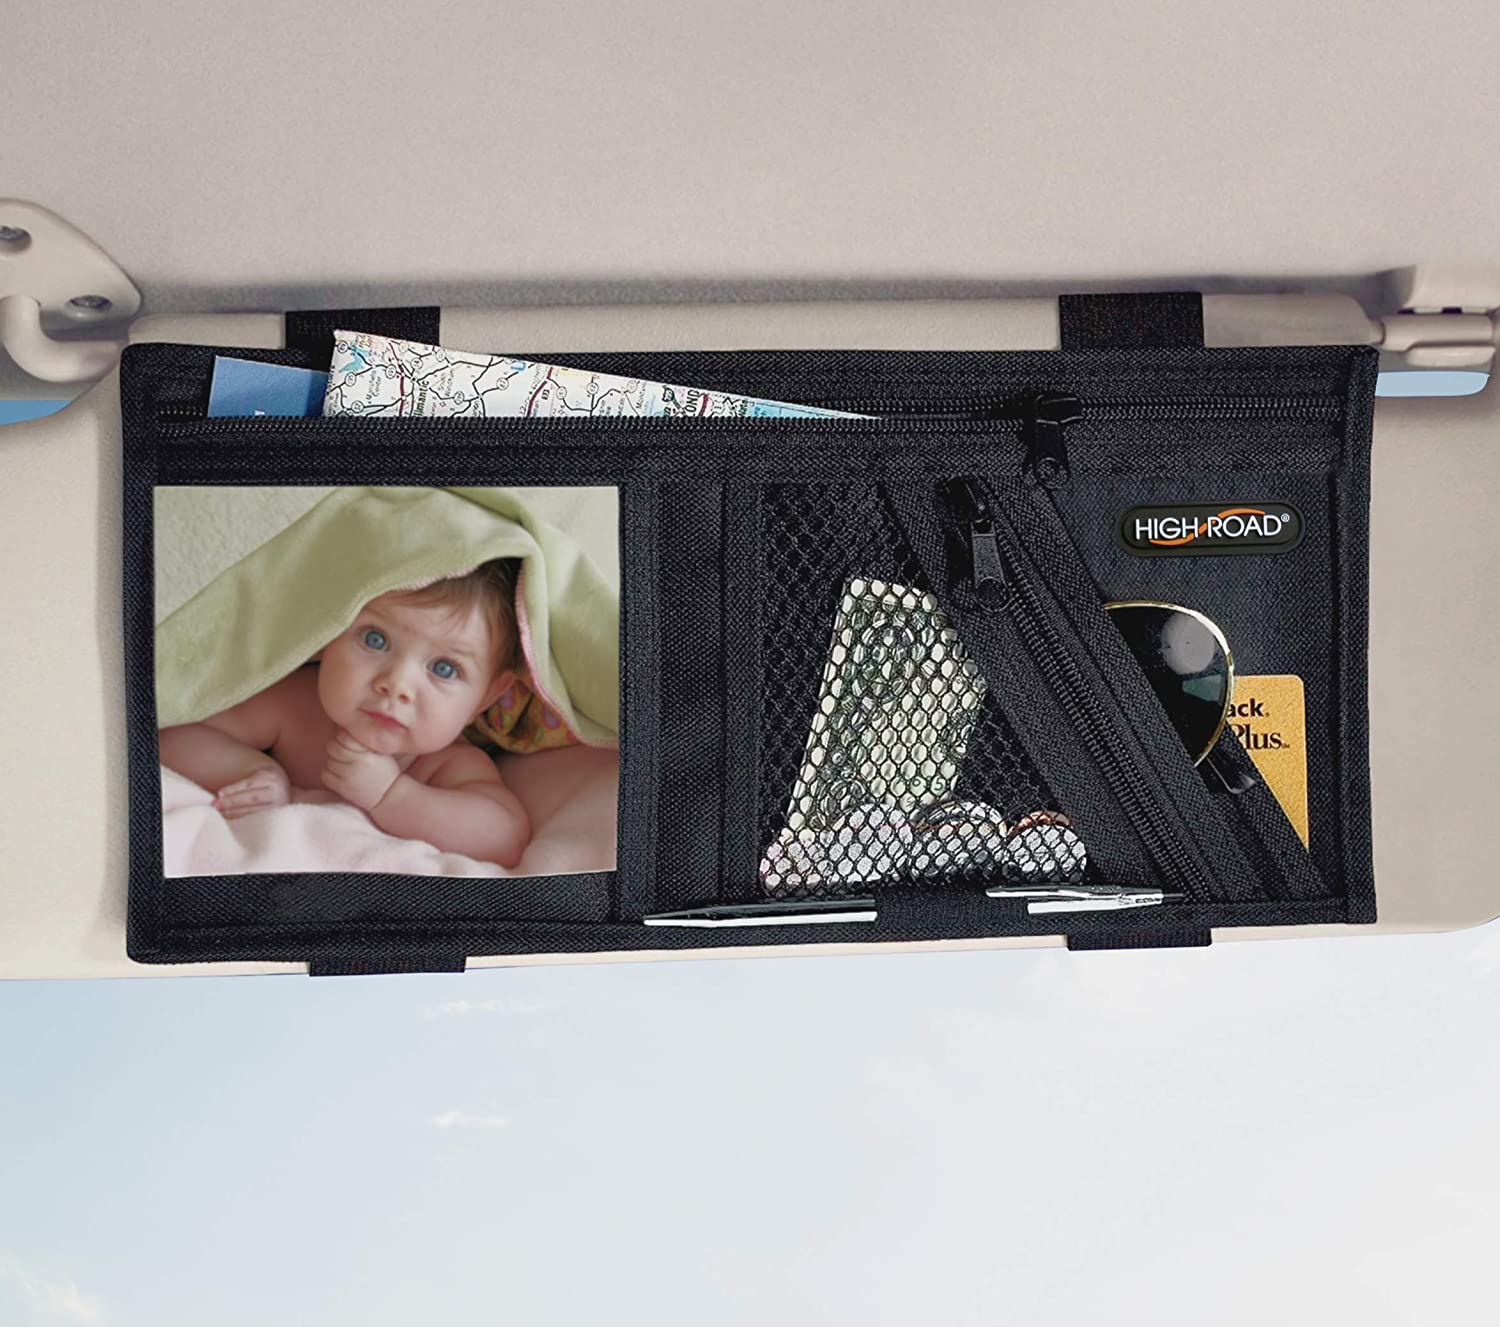 High Road Car Visor Organizer with Zippered and Soft-Lined Pockets